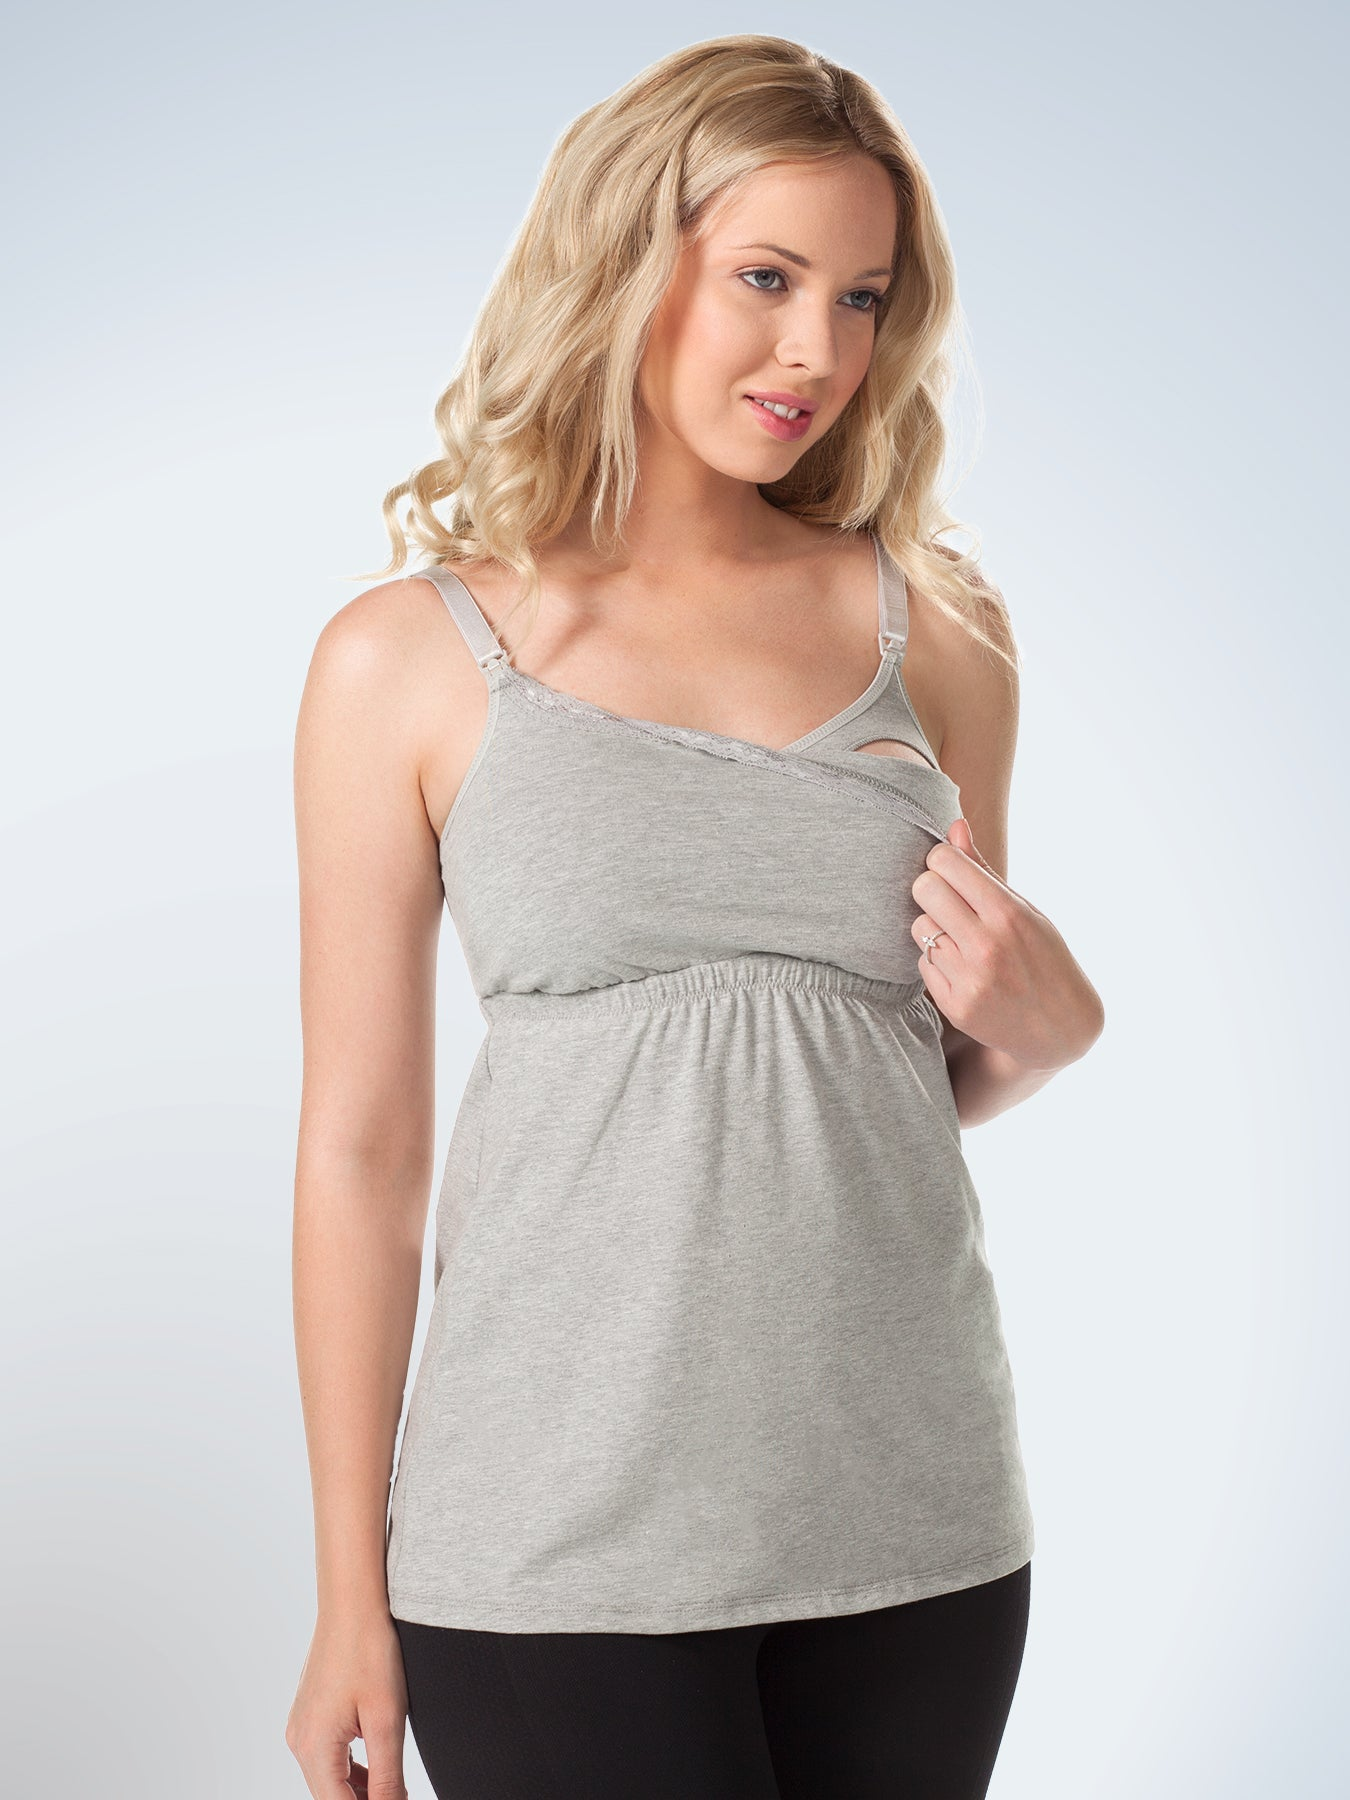 Loving Moments Nursing Cami With Lace L317 Leading Lady Inc